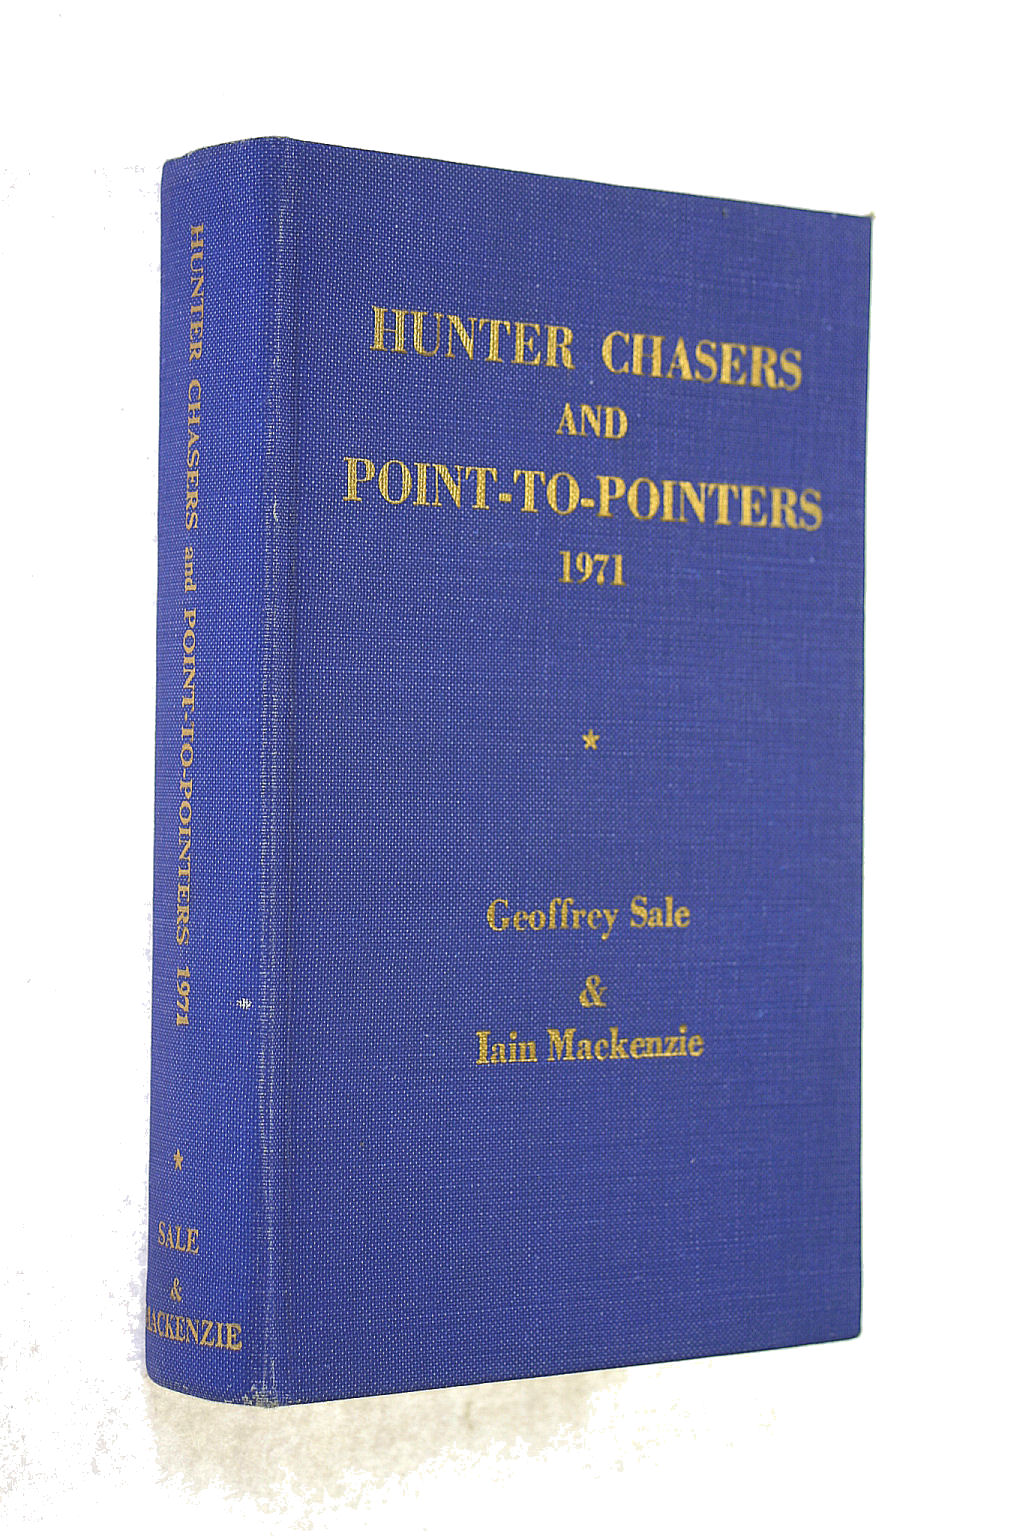 Image for Hunter Chasers And Point-To-Pointers 1971